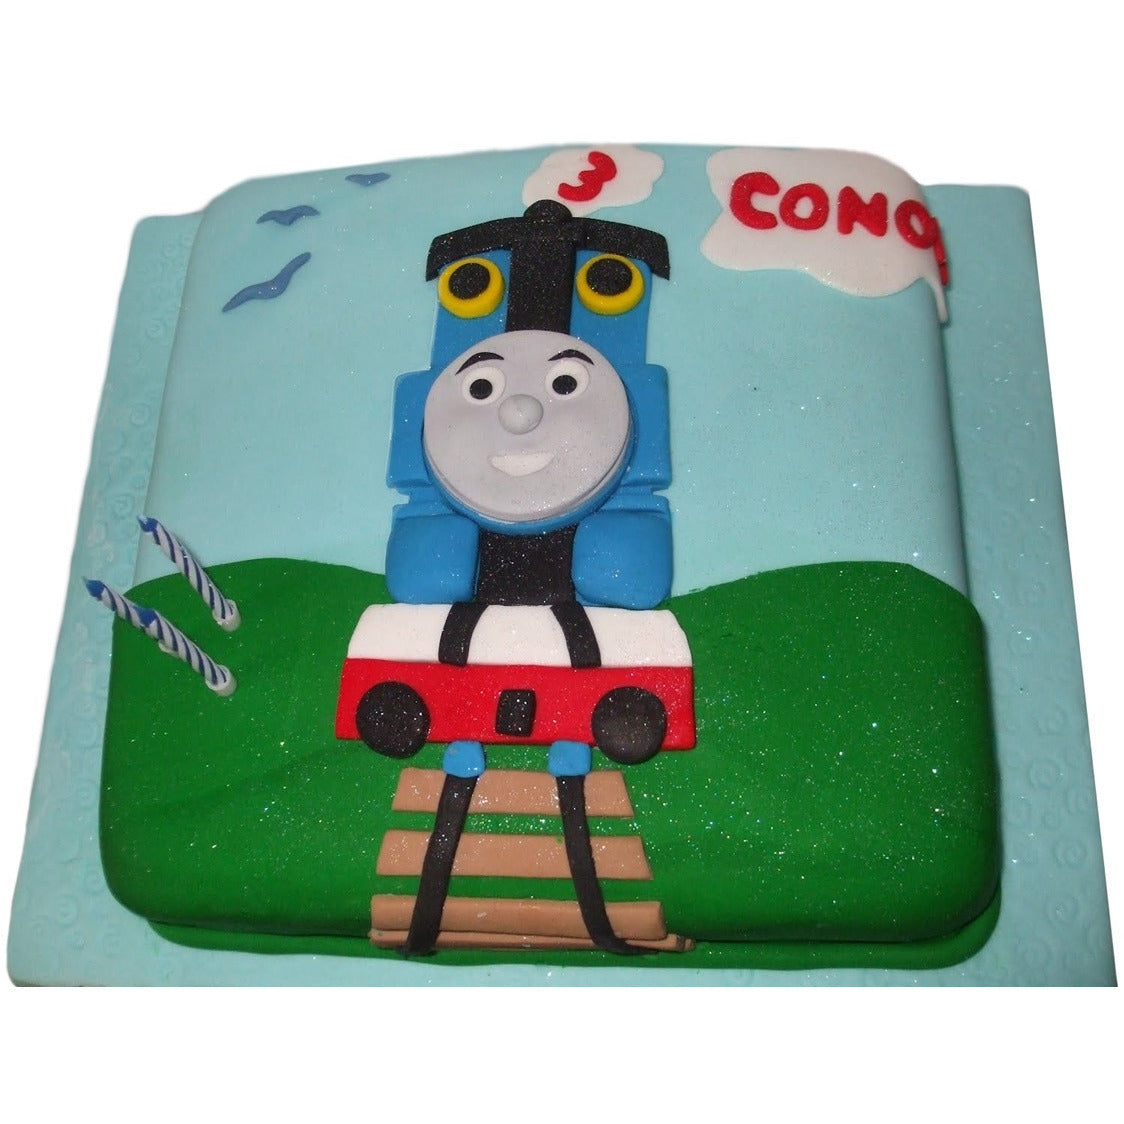 Thomas The Tank Engine Cake Buy Online Free Uk Delivery New Cakes